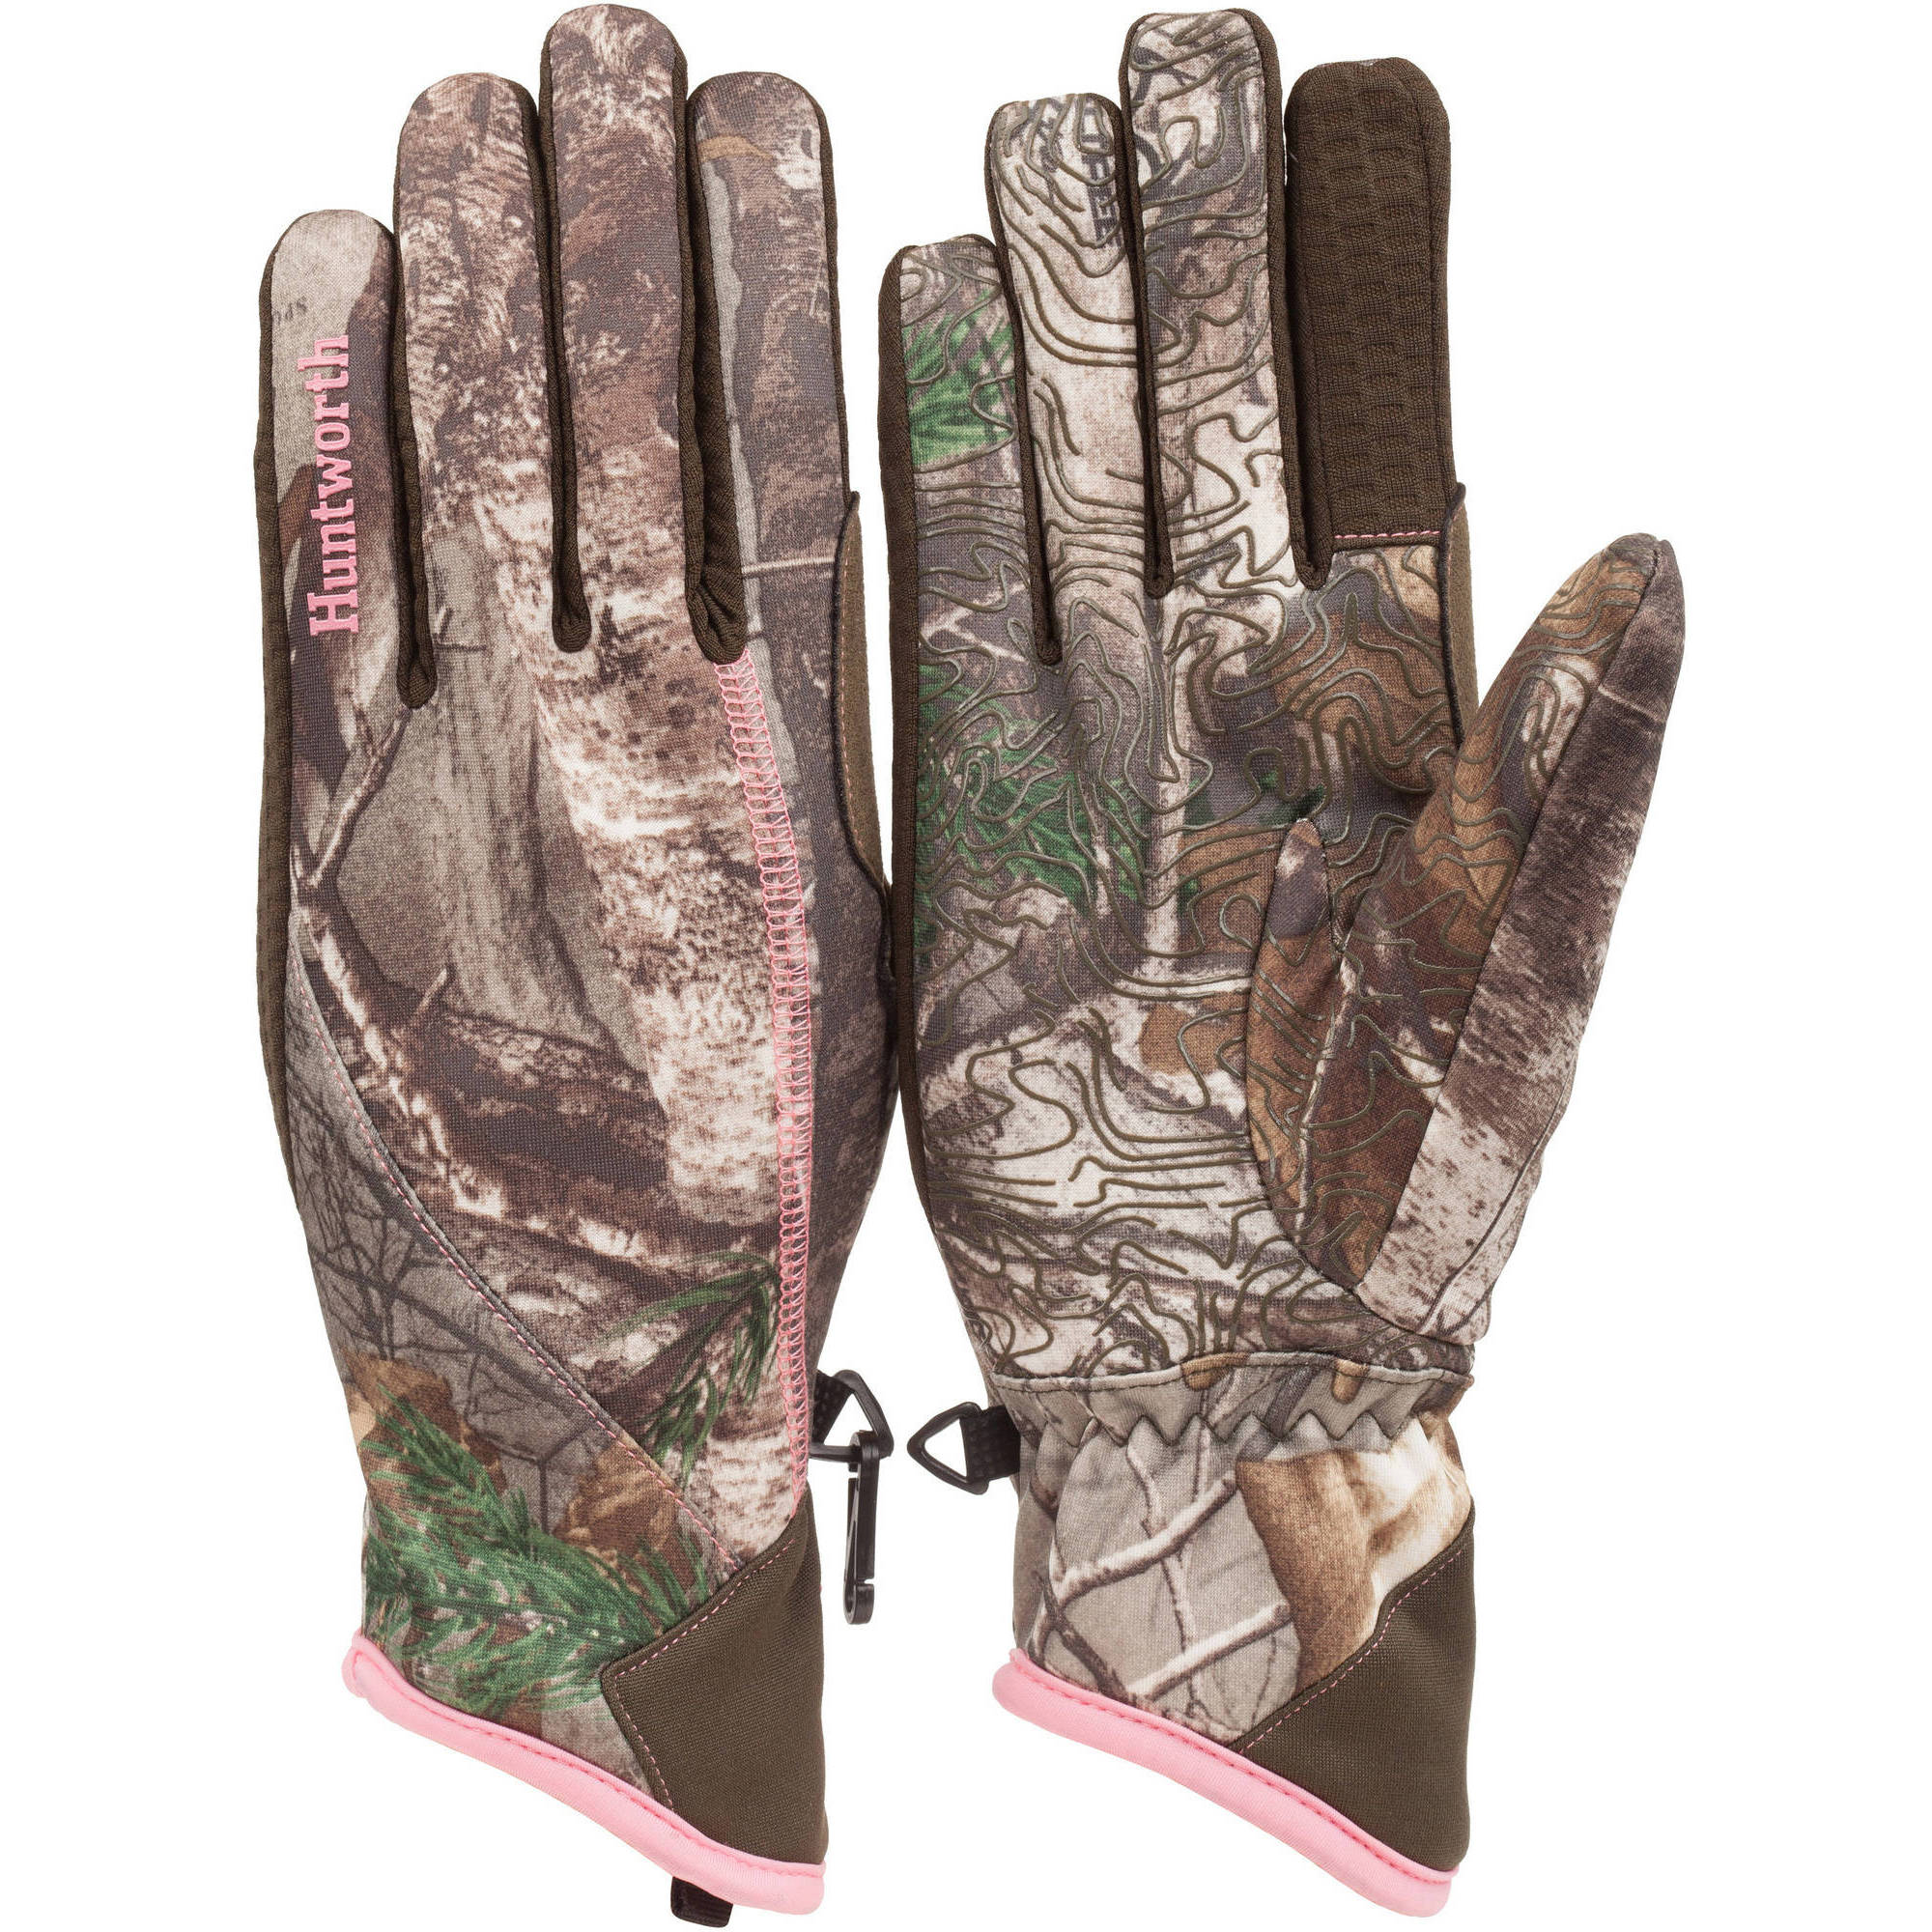 Huntworth Omega Ladies' Performance Fleece Hunting Gloves, Small/Medium